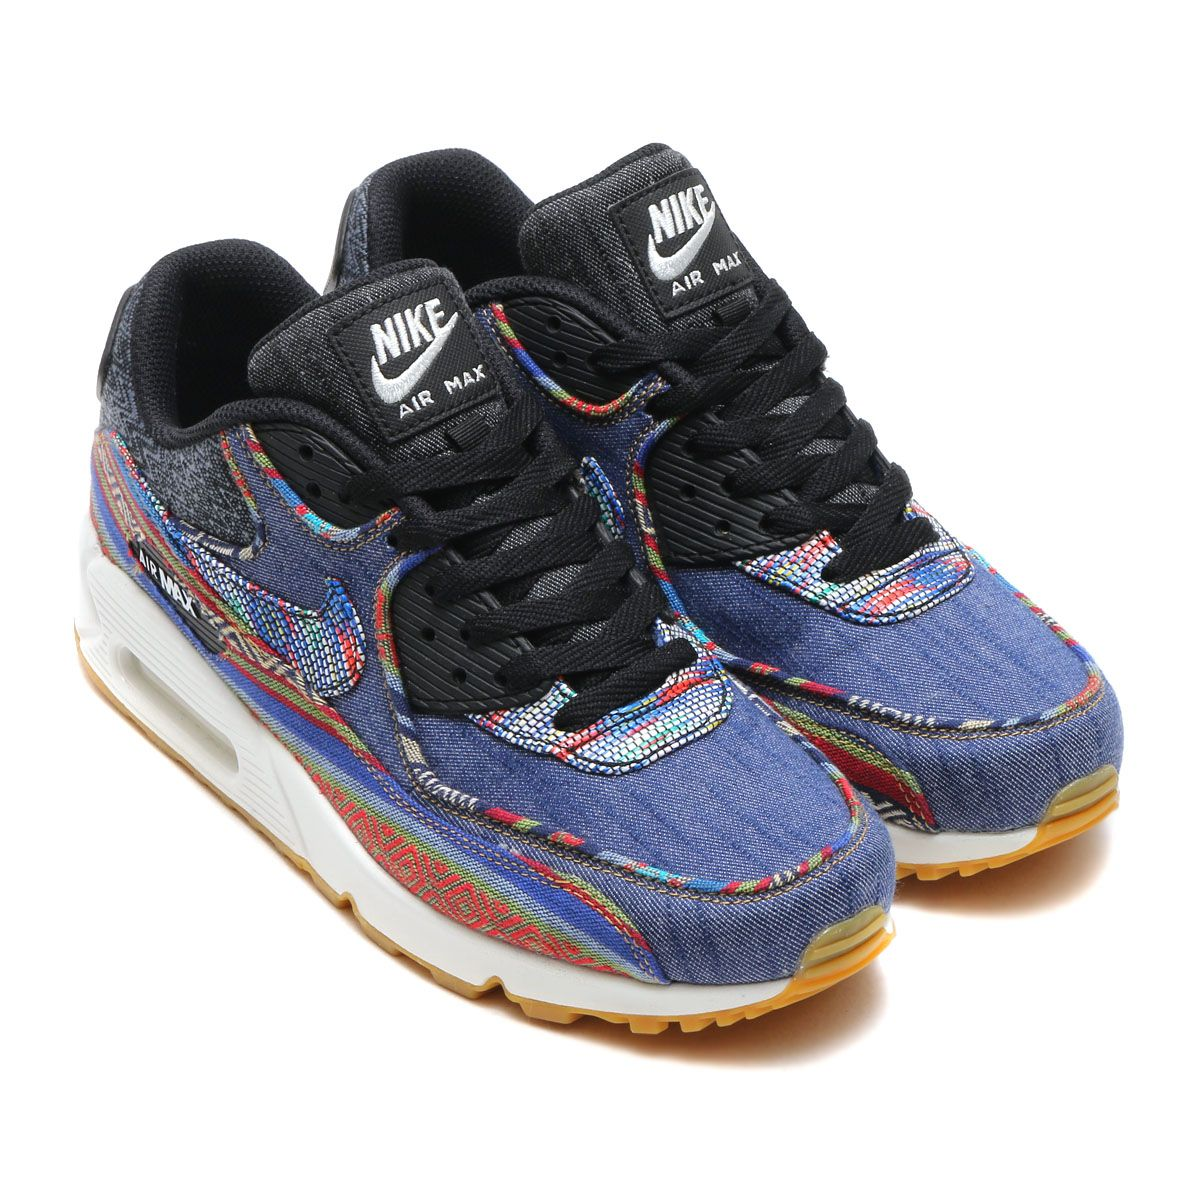 Best Drop Shipping Nike Air Max 90 SP Sacai Couple running shoes Dark blue black[80